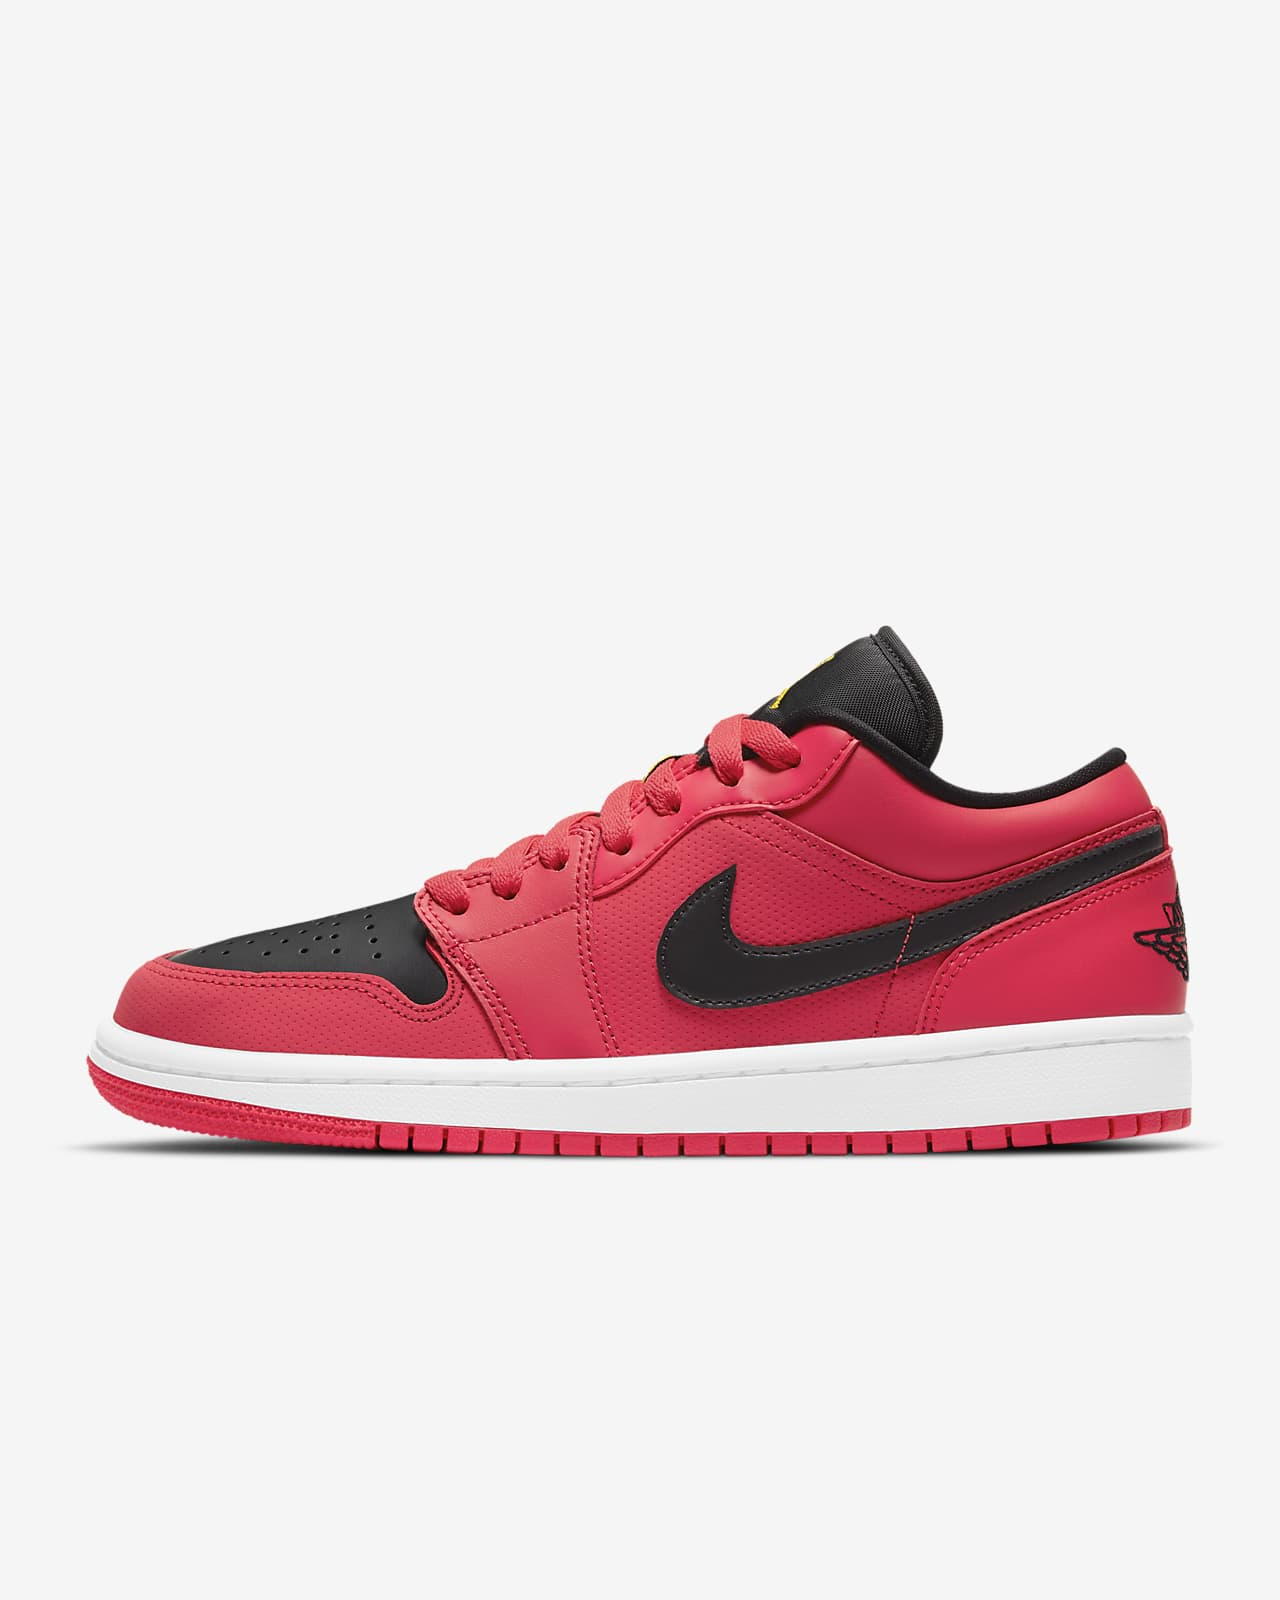 Air Jordan 1 Low Women S Shoe Nike Nz